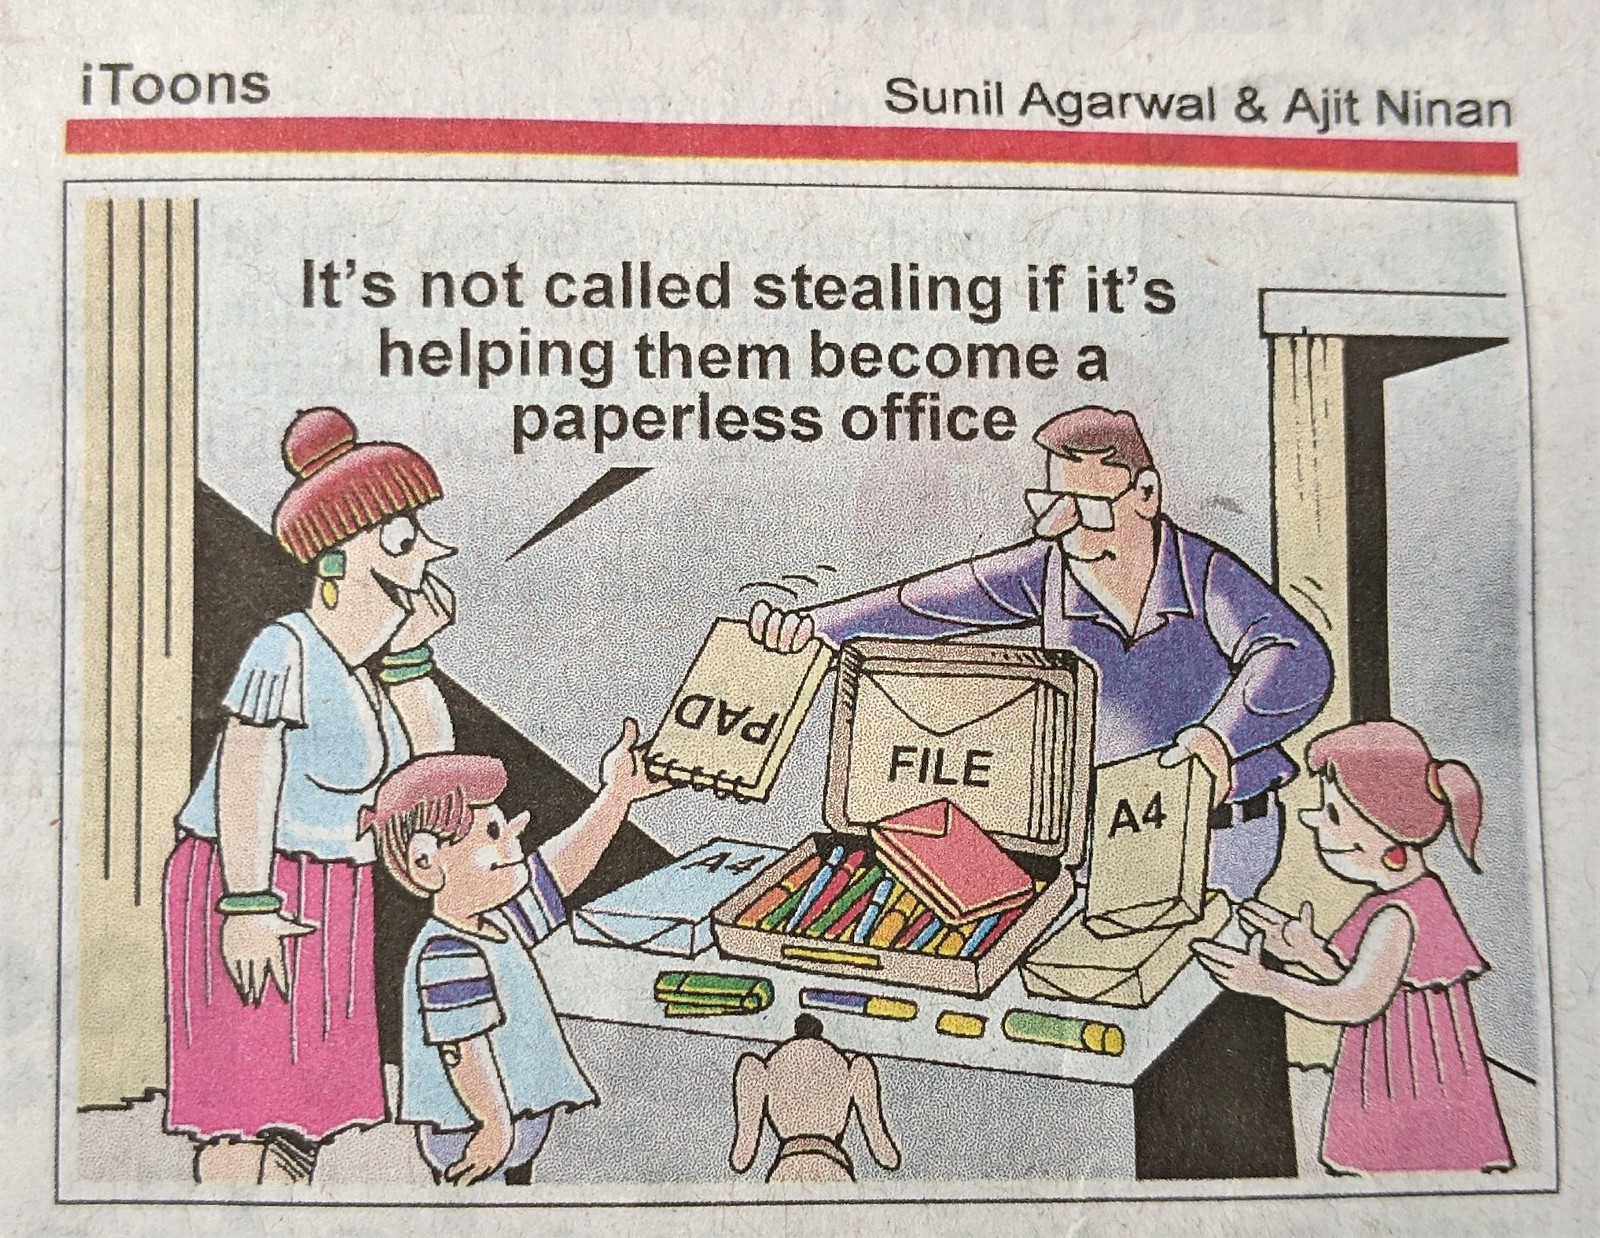 It's not called stealing if it's helping them become a paperless office by Sunil Agarwal and Ajit Ninan